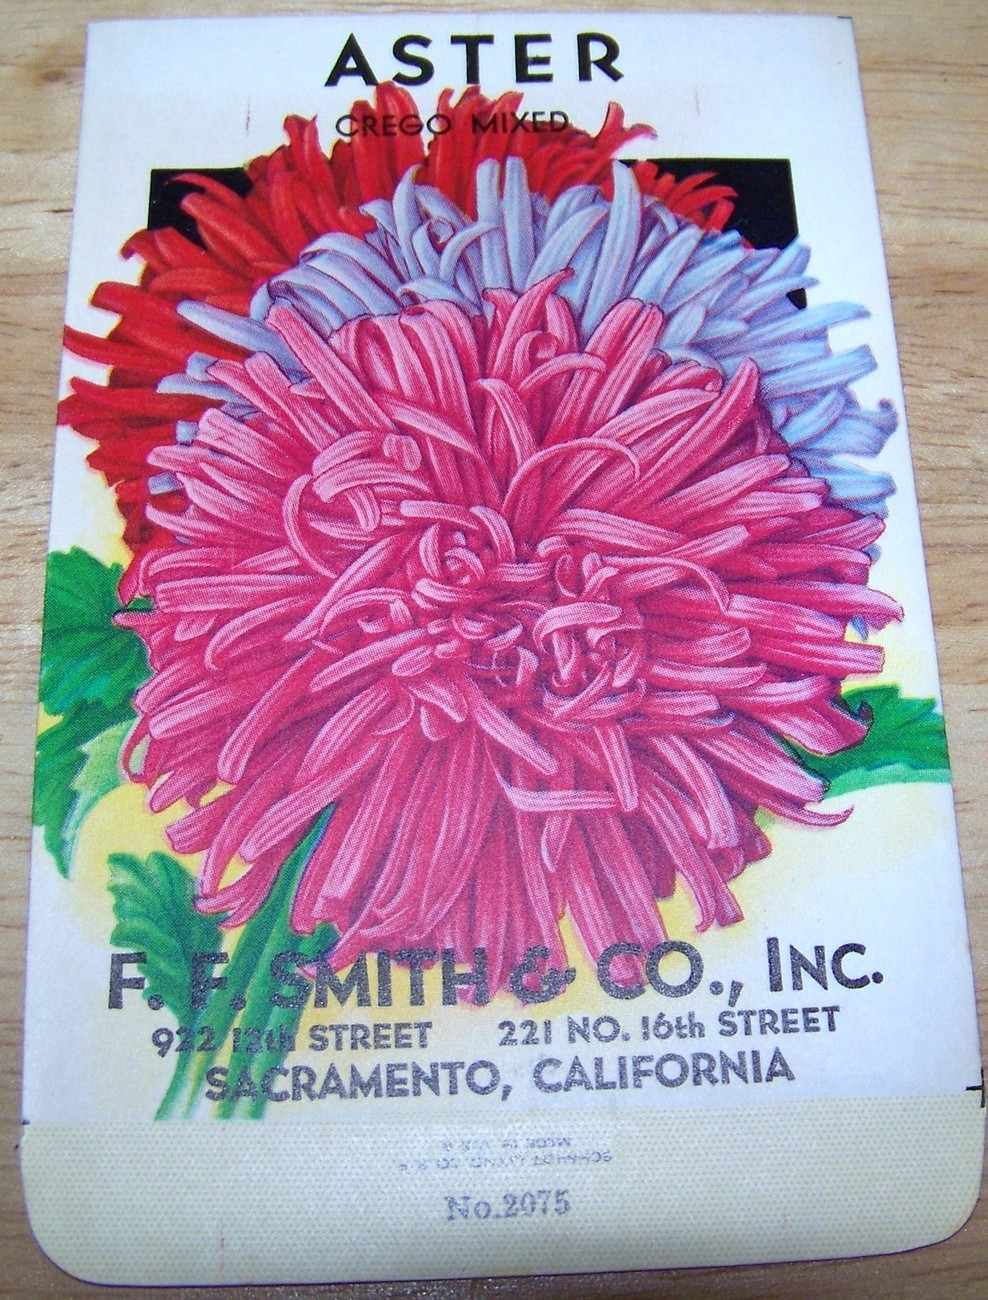 Primary image for Vintage 1920s Seed packet 4 framing Aster Crego Mix FF Smith co Sacramento CA